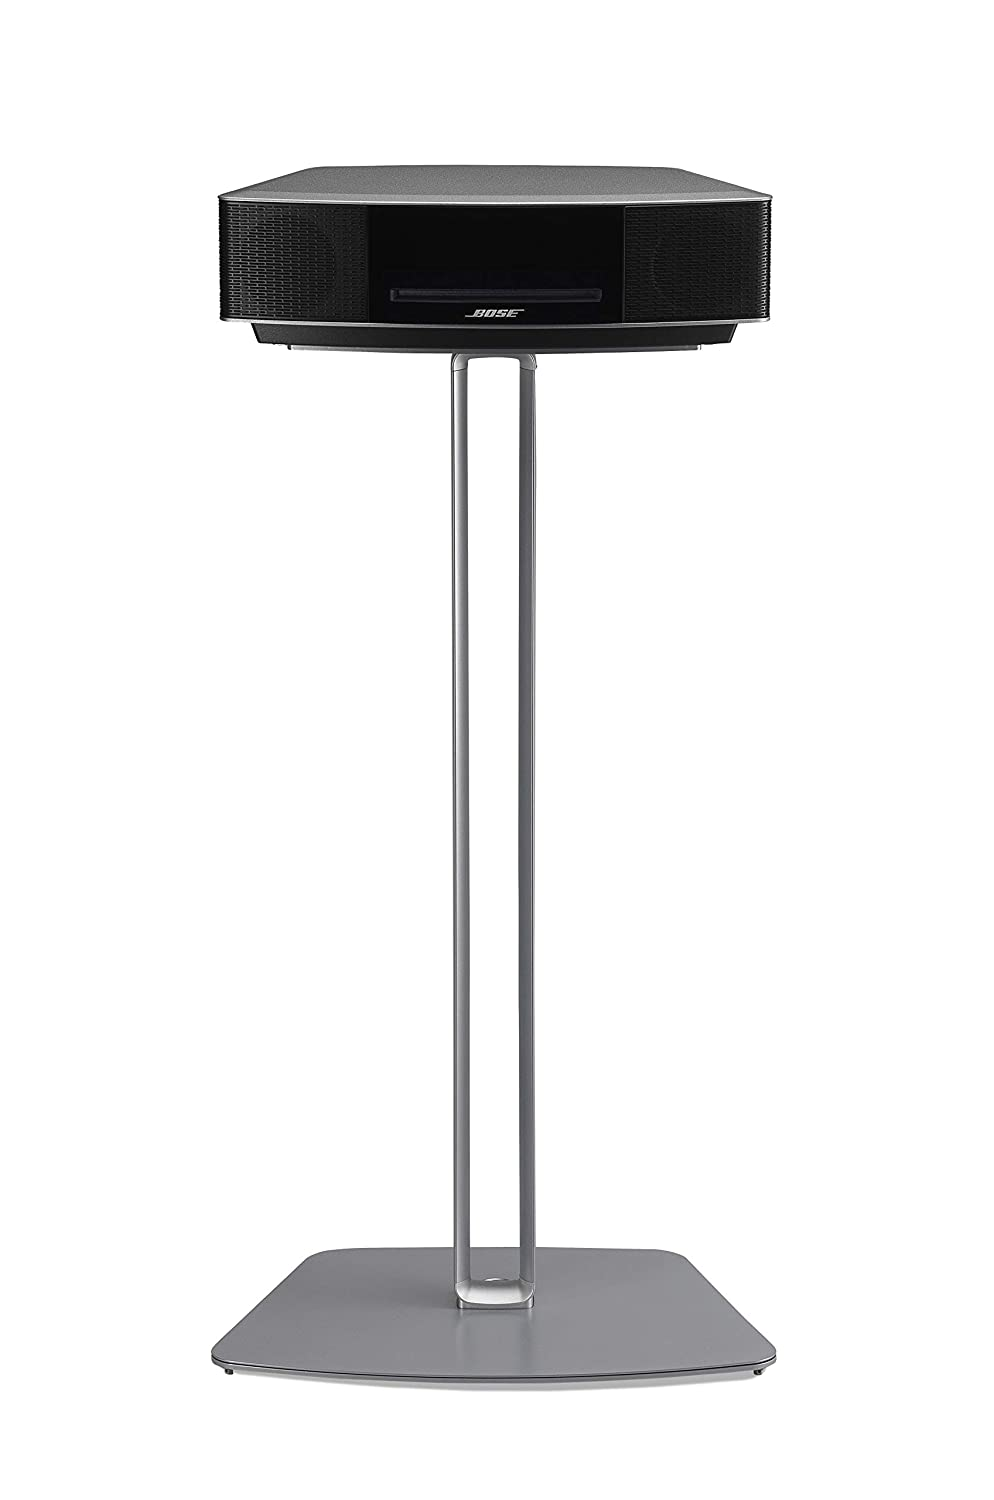 SoundXtra BWFS1091 Floor Stand for Bose Wave - Silver